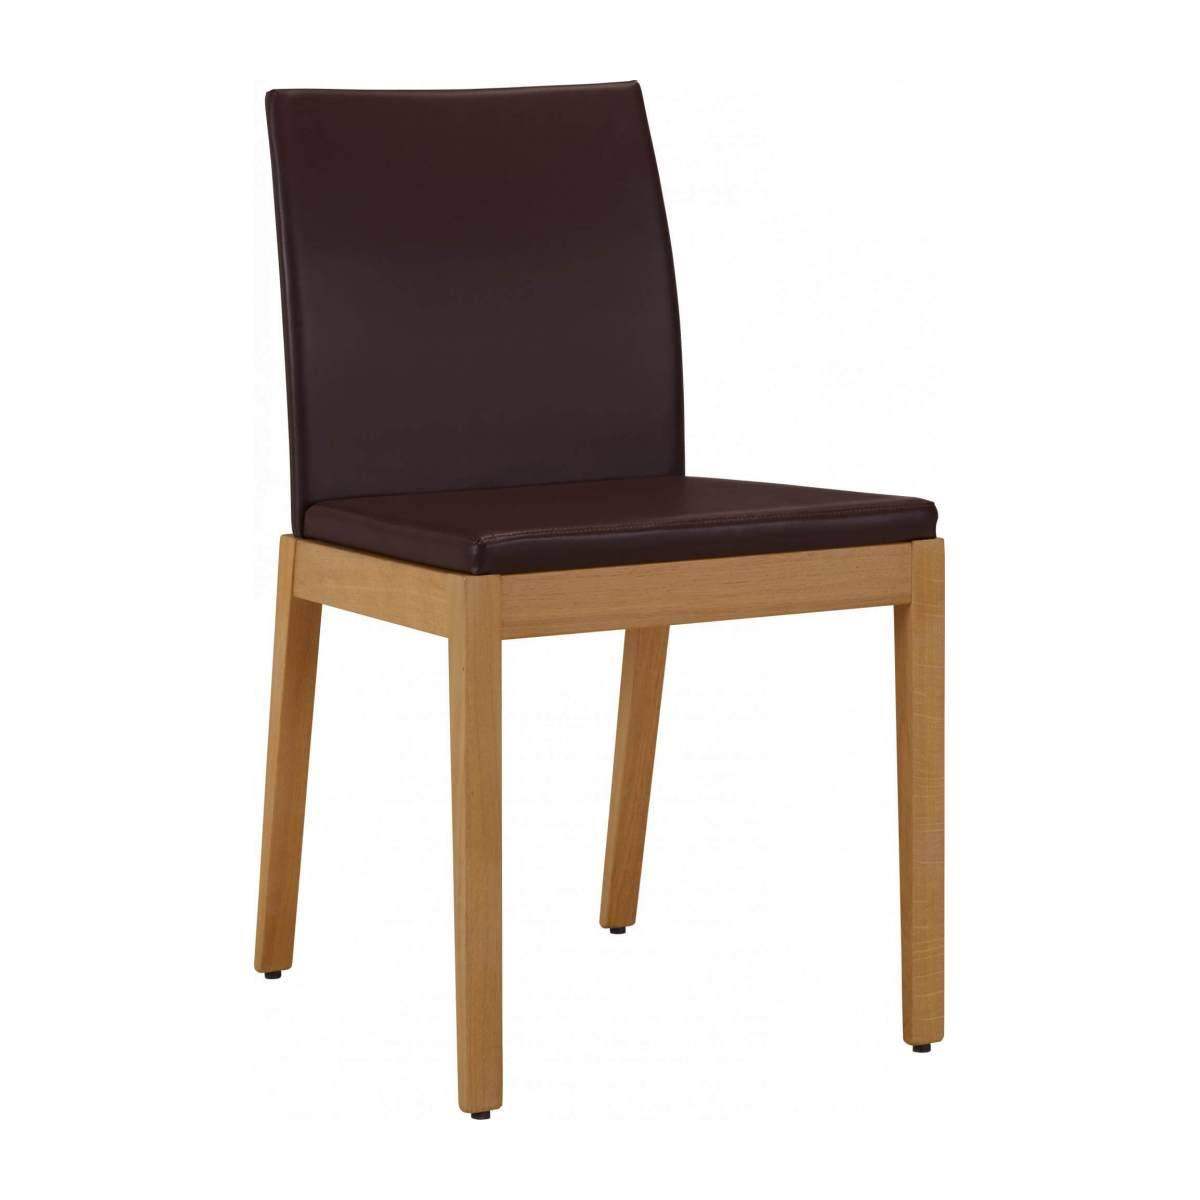 Oak Chair n°2